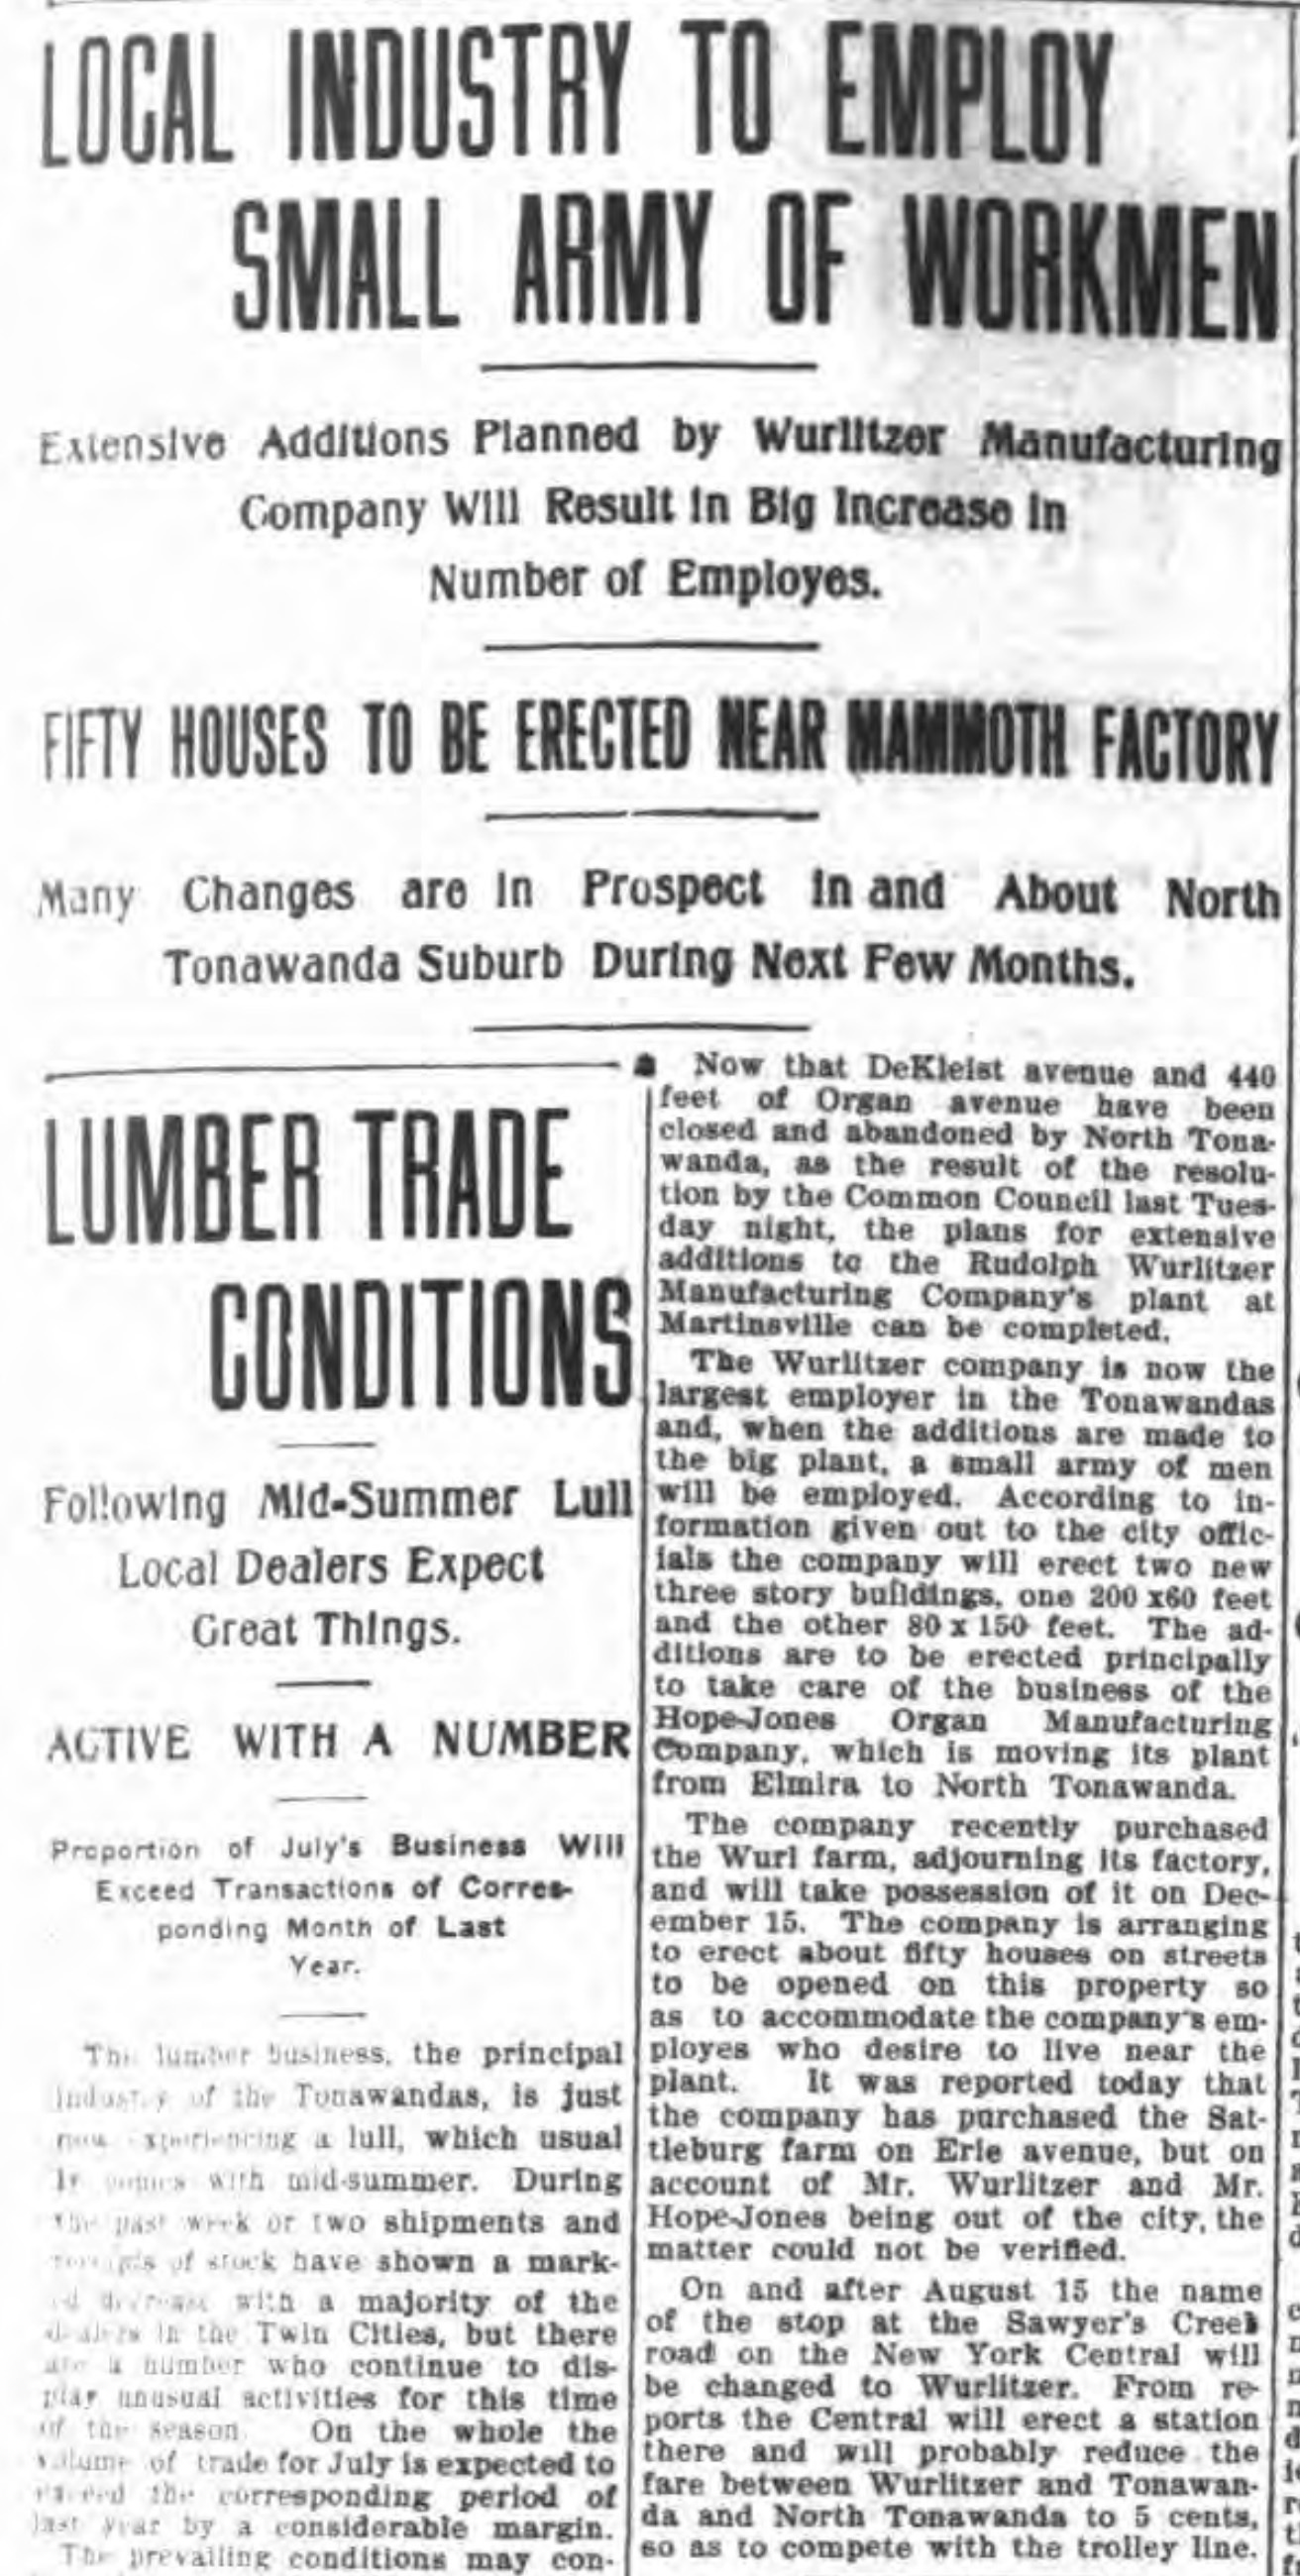 Local industry to employ small army of workmen, article (Tonawanda News, 1910-07-29).jpg